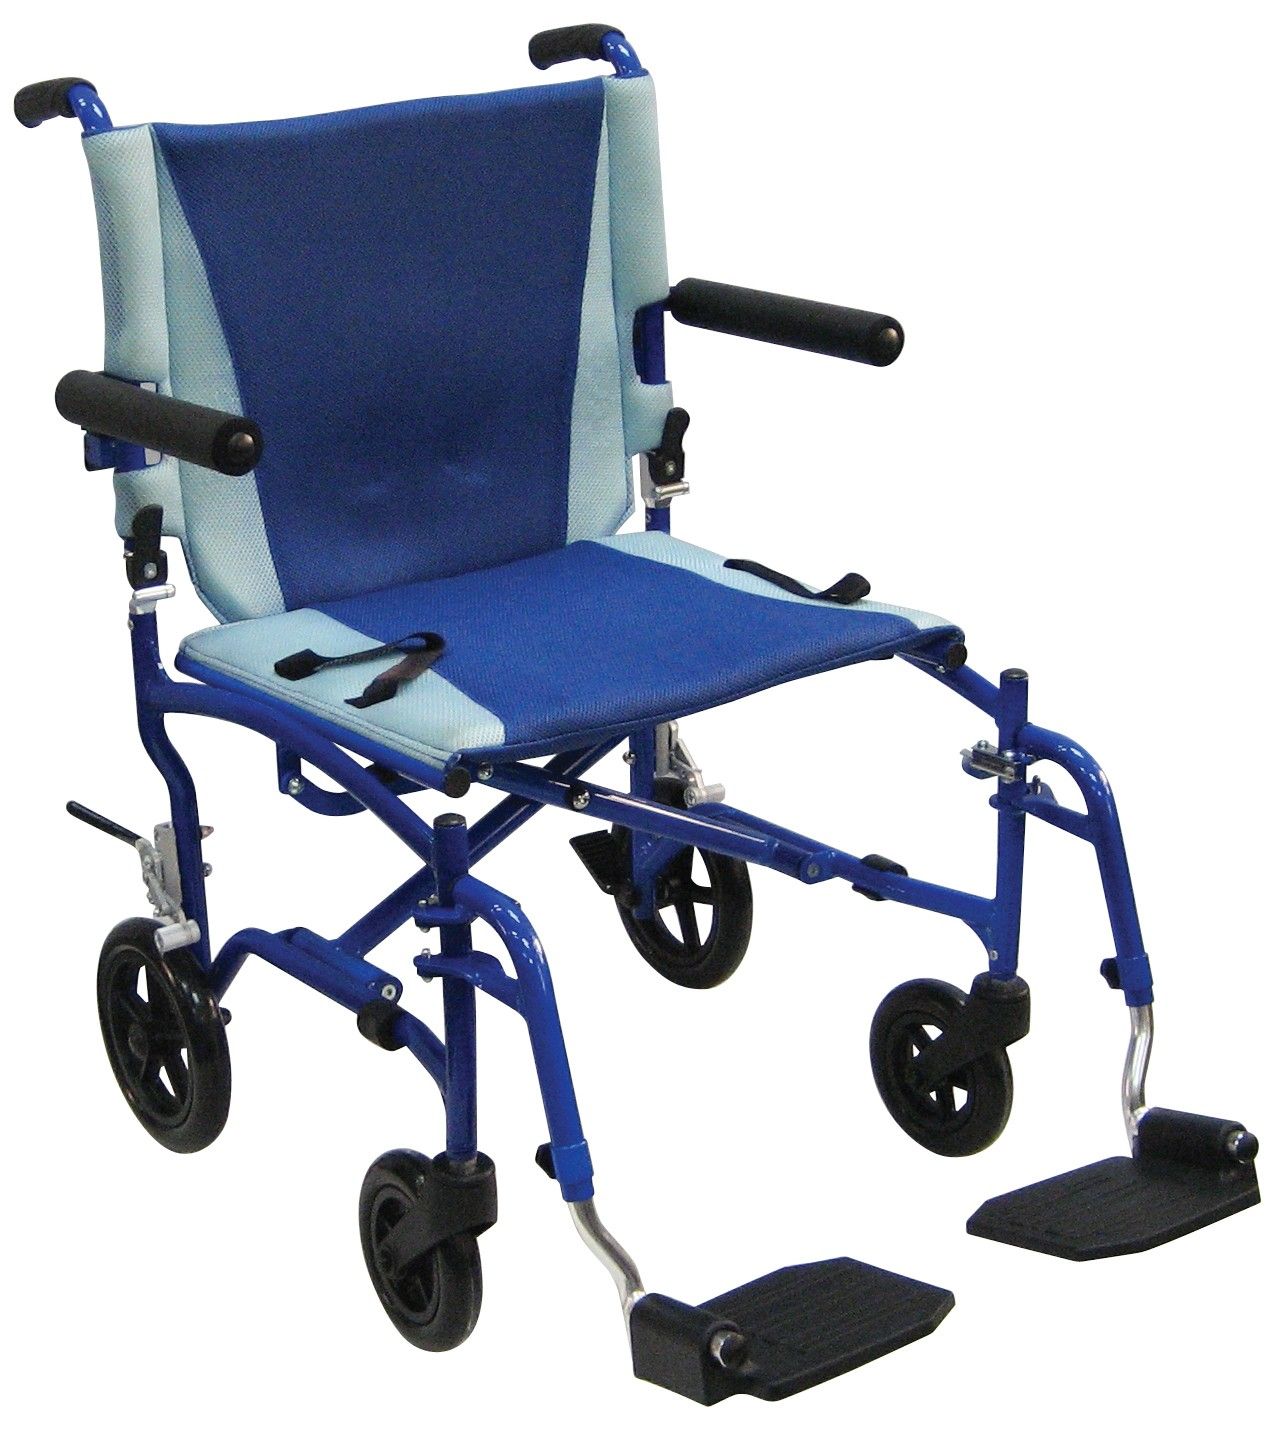 bariatric transport chair 24 seat skate staples drive medical aluminum